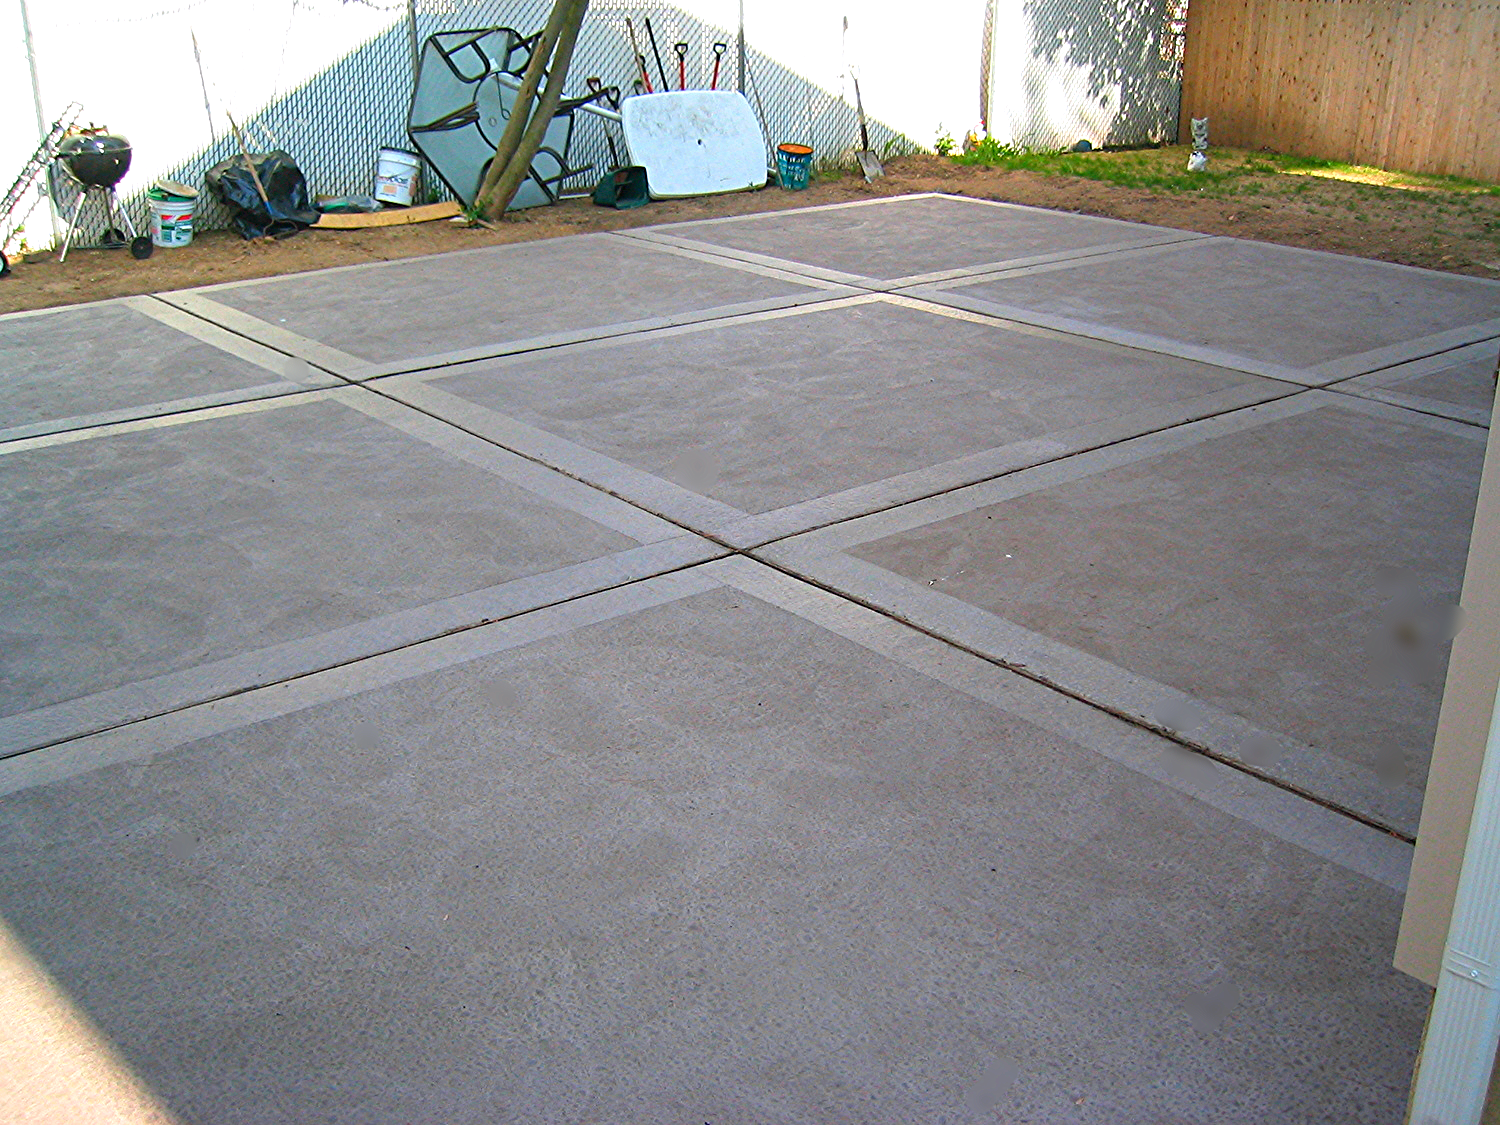 Concrete Patio with hand float finish, the old fashioned way.